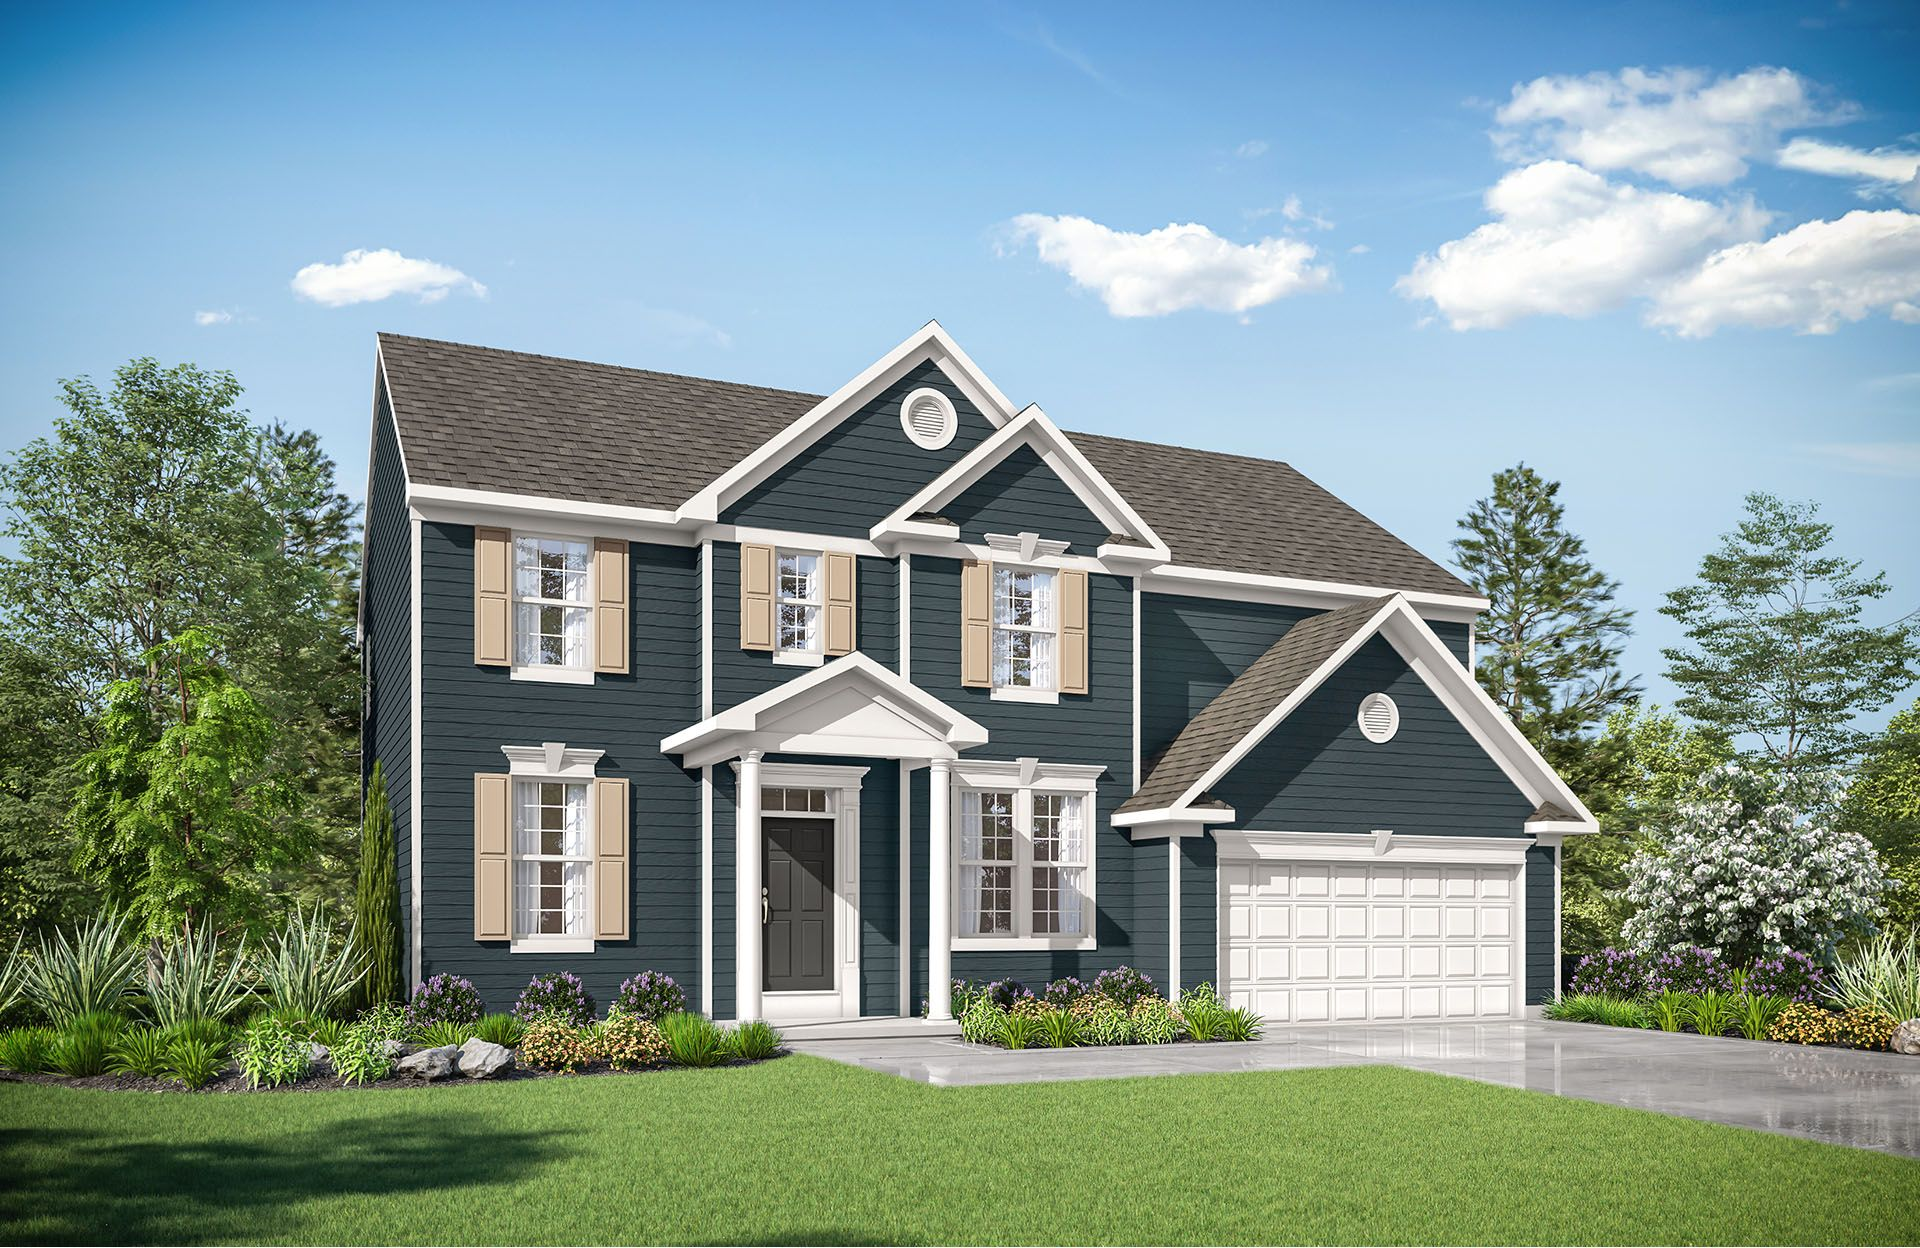 Single Family for Active at Virginia Crossing - Quentin 7001 Saint Hill Court Haymarket, Virginia 20169 United States